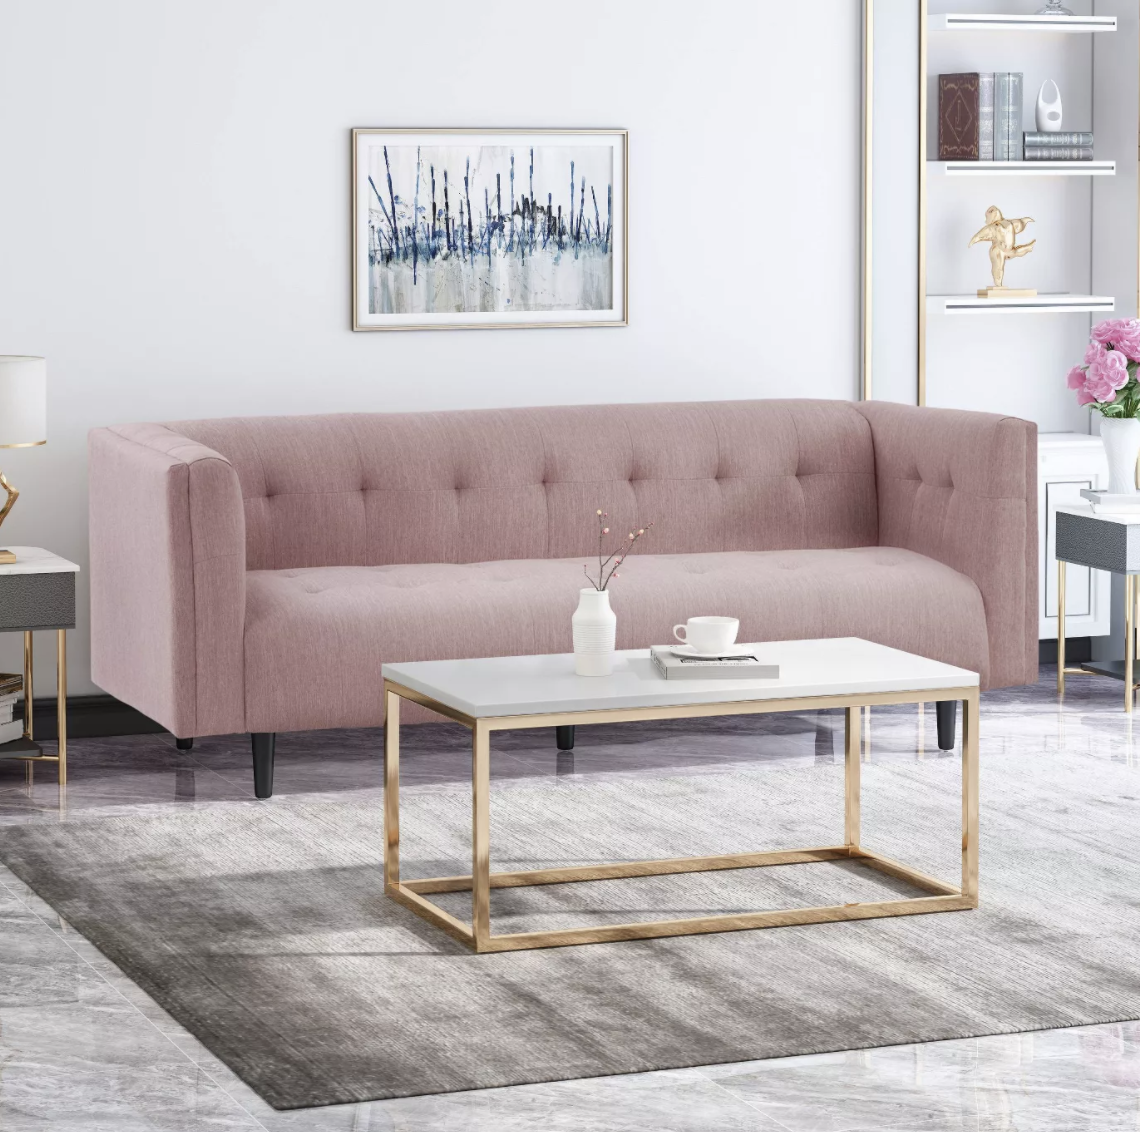 the boxy pink sofa which has four wooden legs